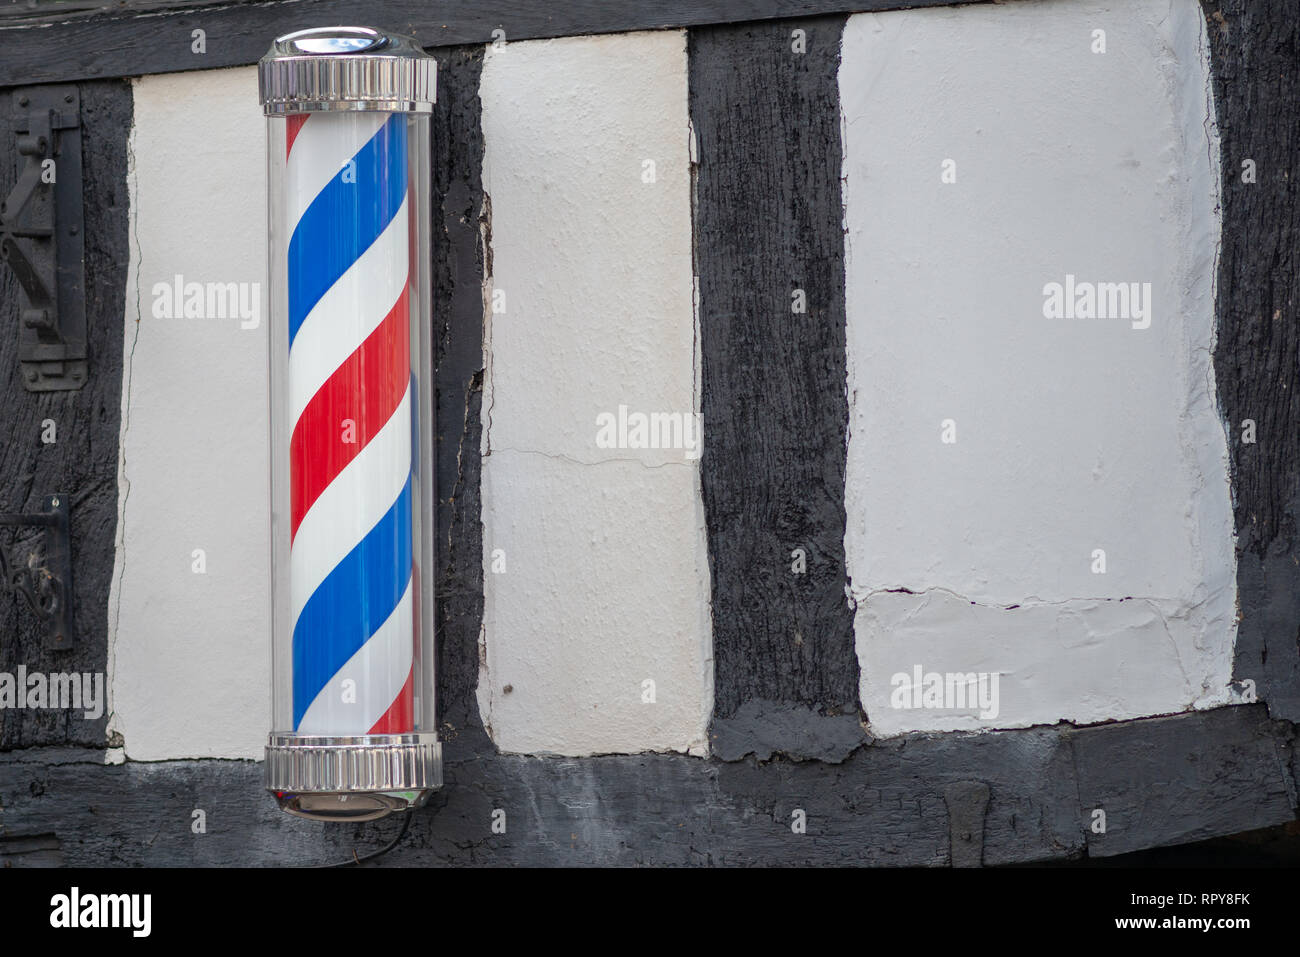 red white and blue barbers pole on ancient timber wall in the UK - Stock Image